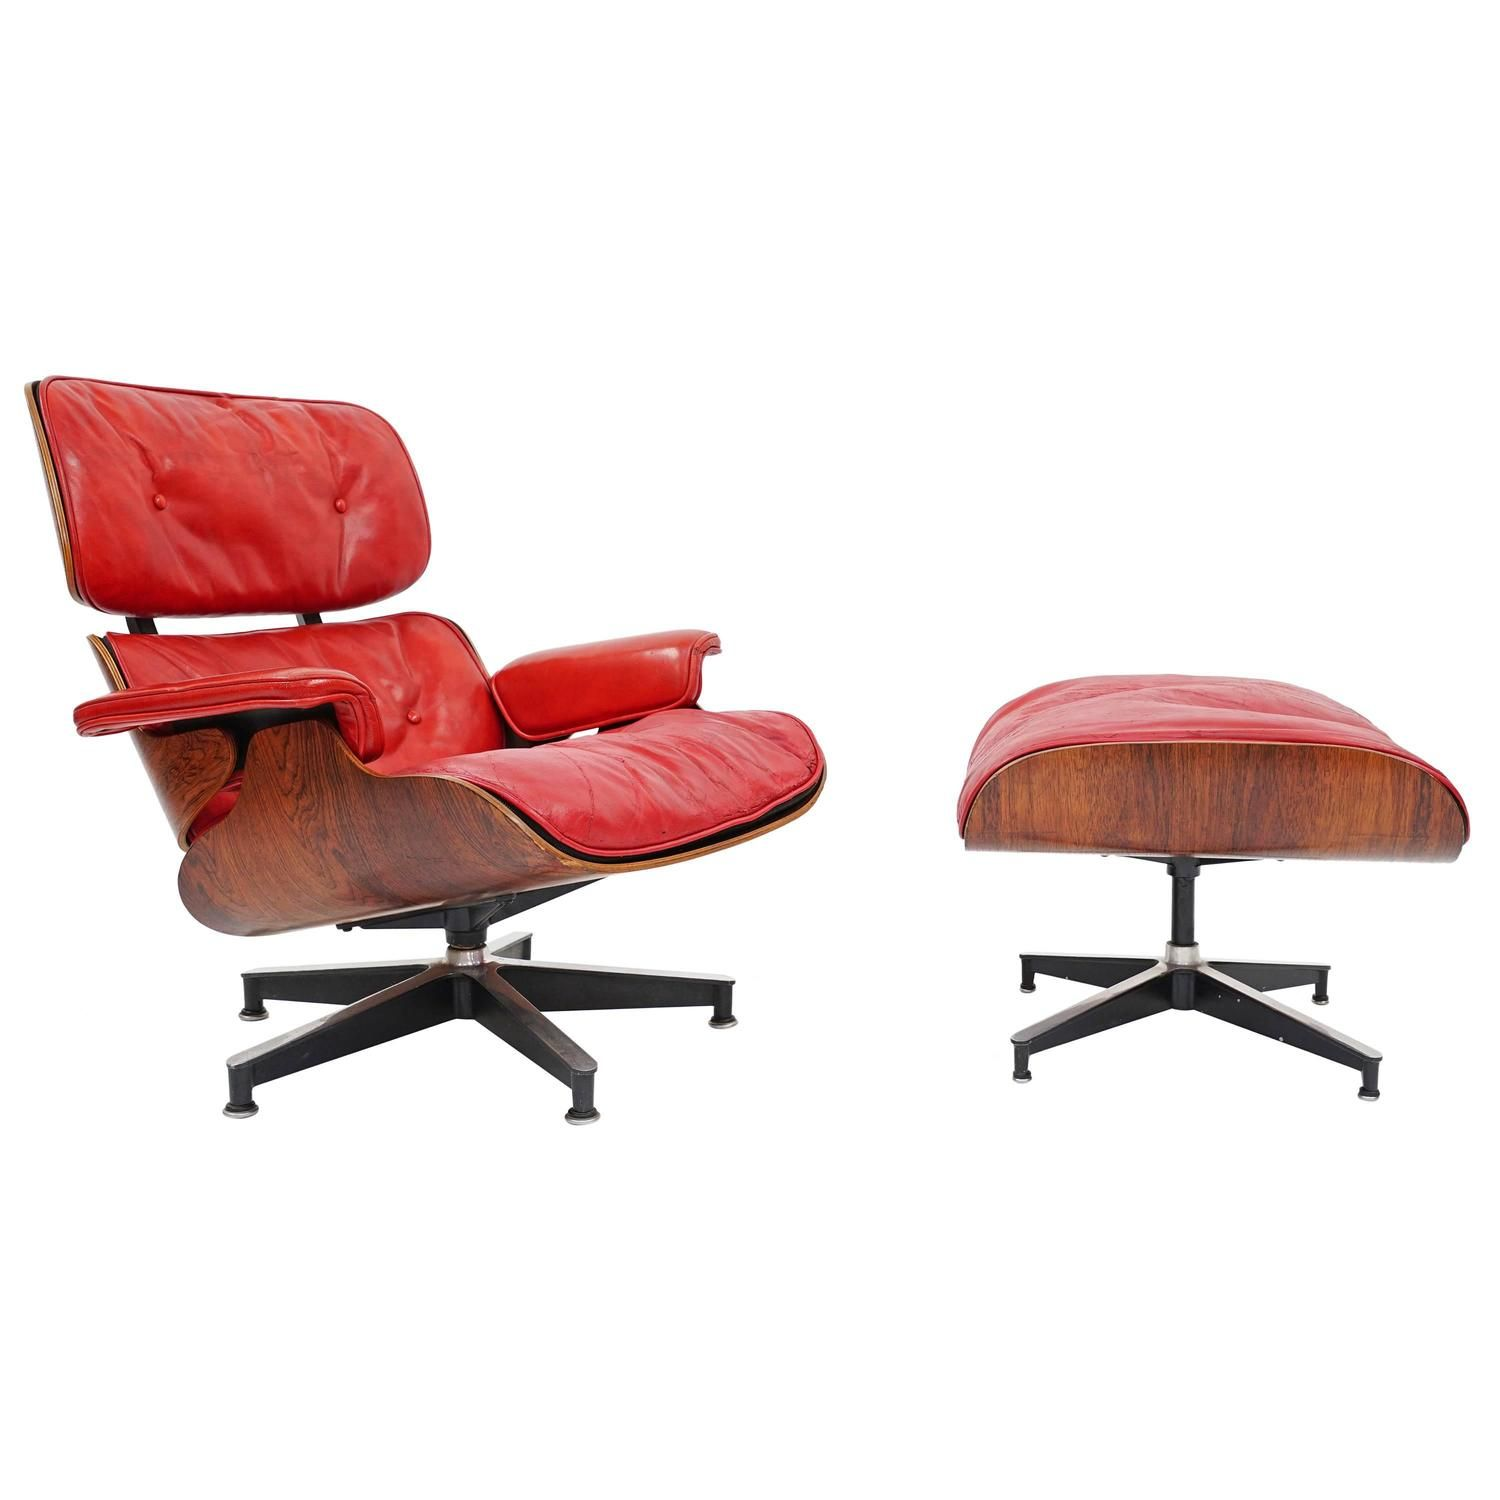 Rare Pepsi Red Eames Lounge Chair By Herman Miller For Pepsi Co 1stdibs Com Lounge Chair Eames Lounge Chair Vintage Lounge Chair